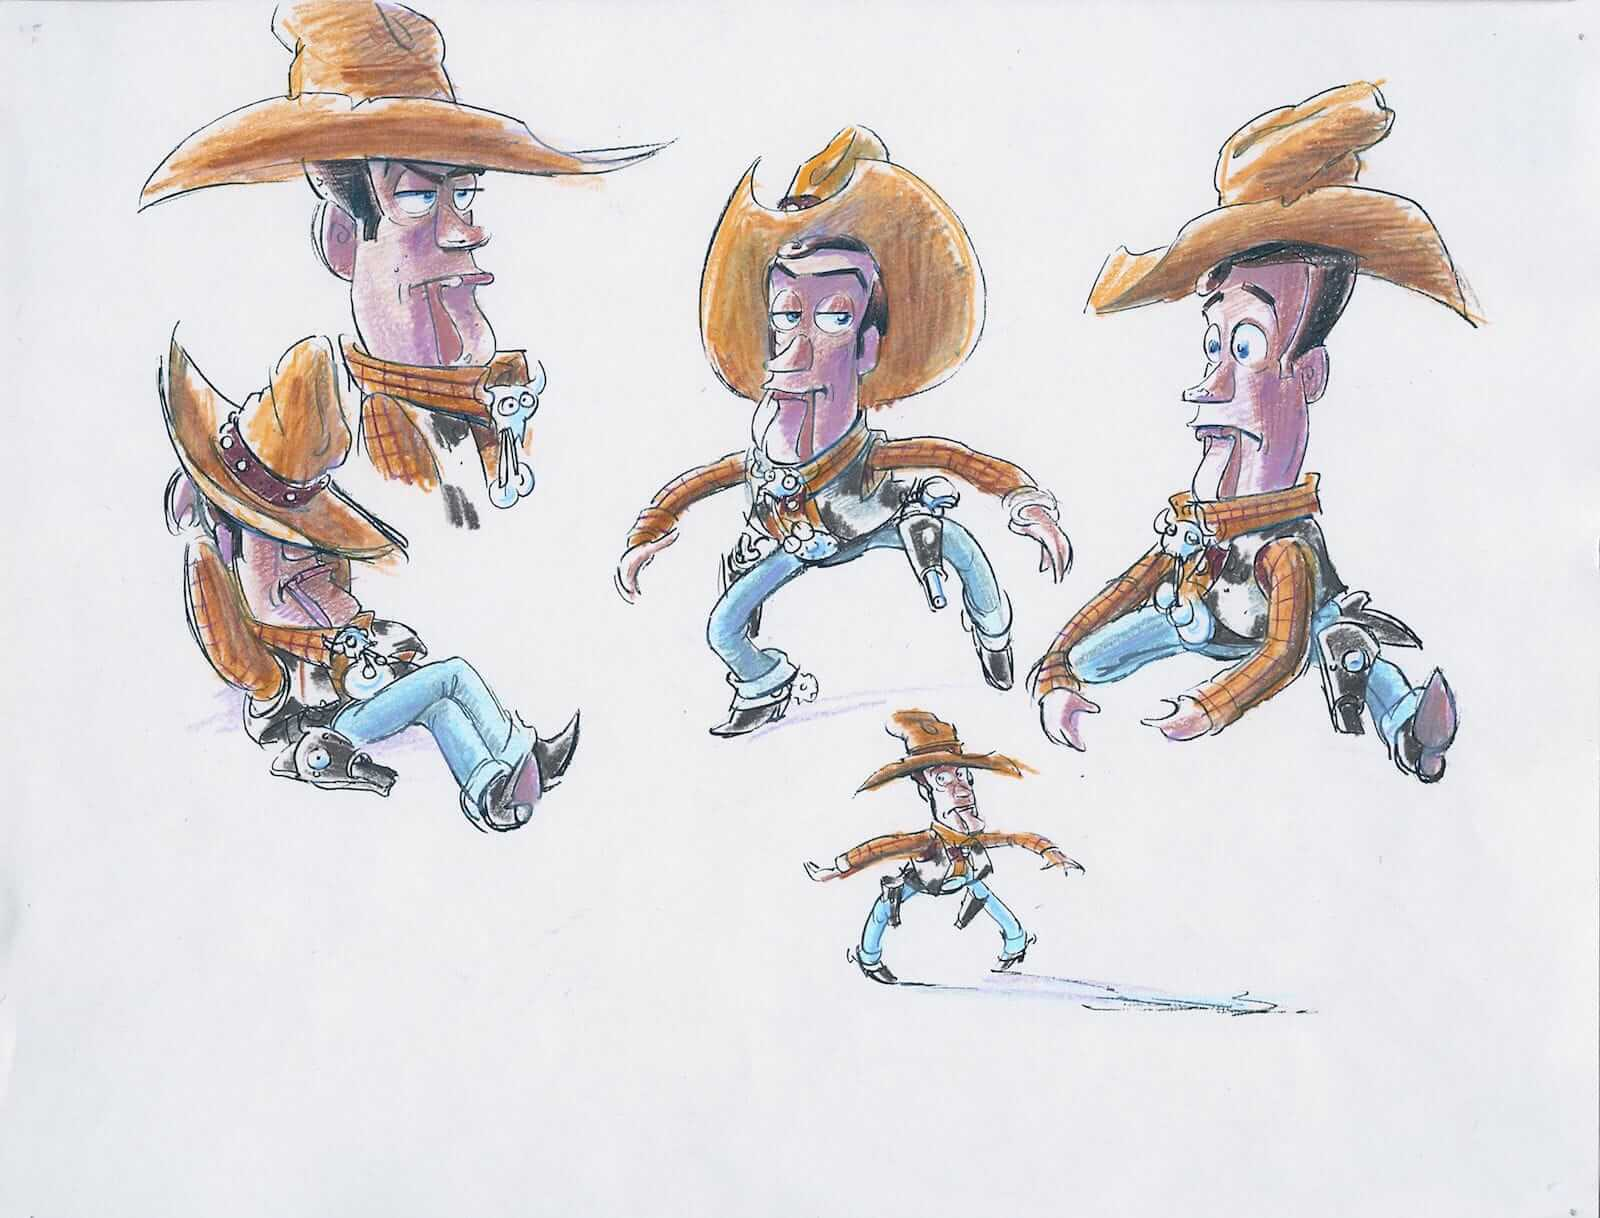 The Pixar Storytelling Formula - An Inside Look - Toy Story Concept Art 2